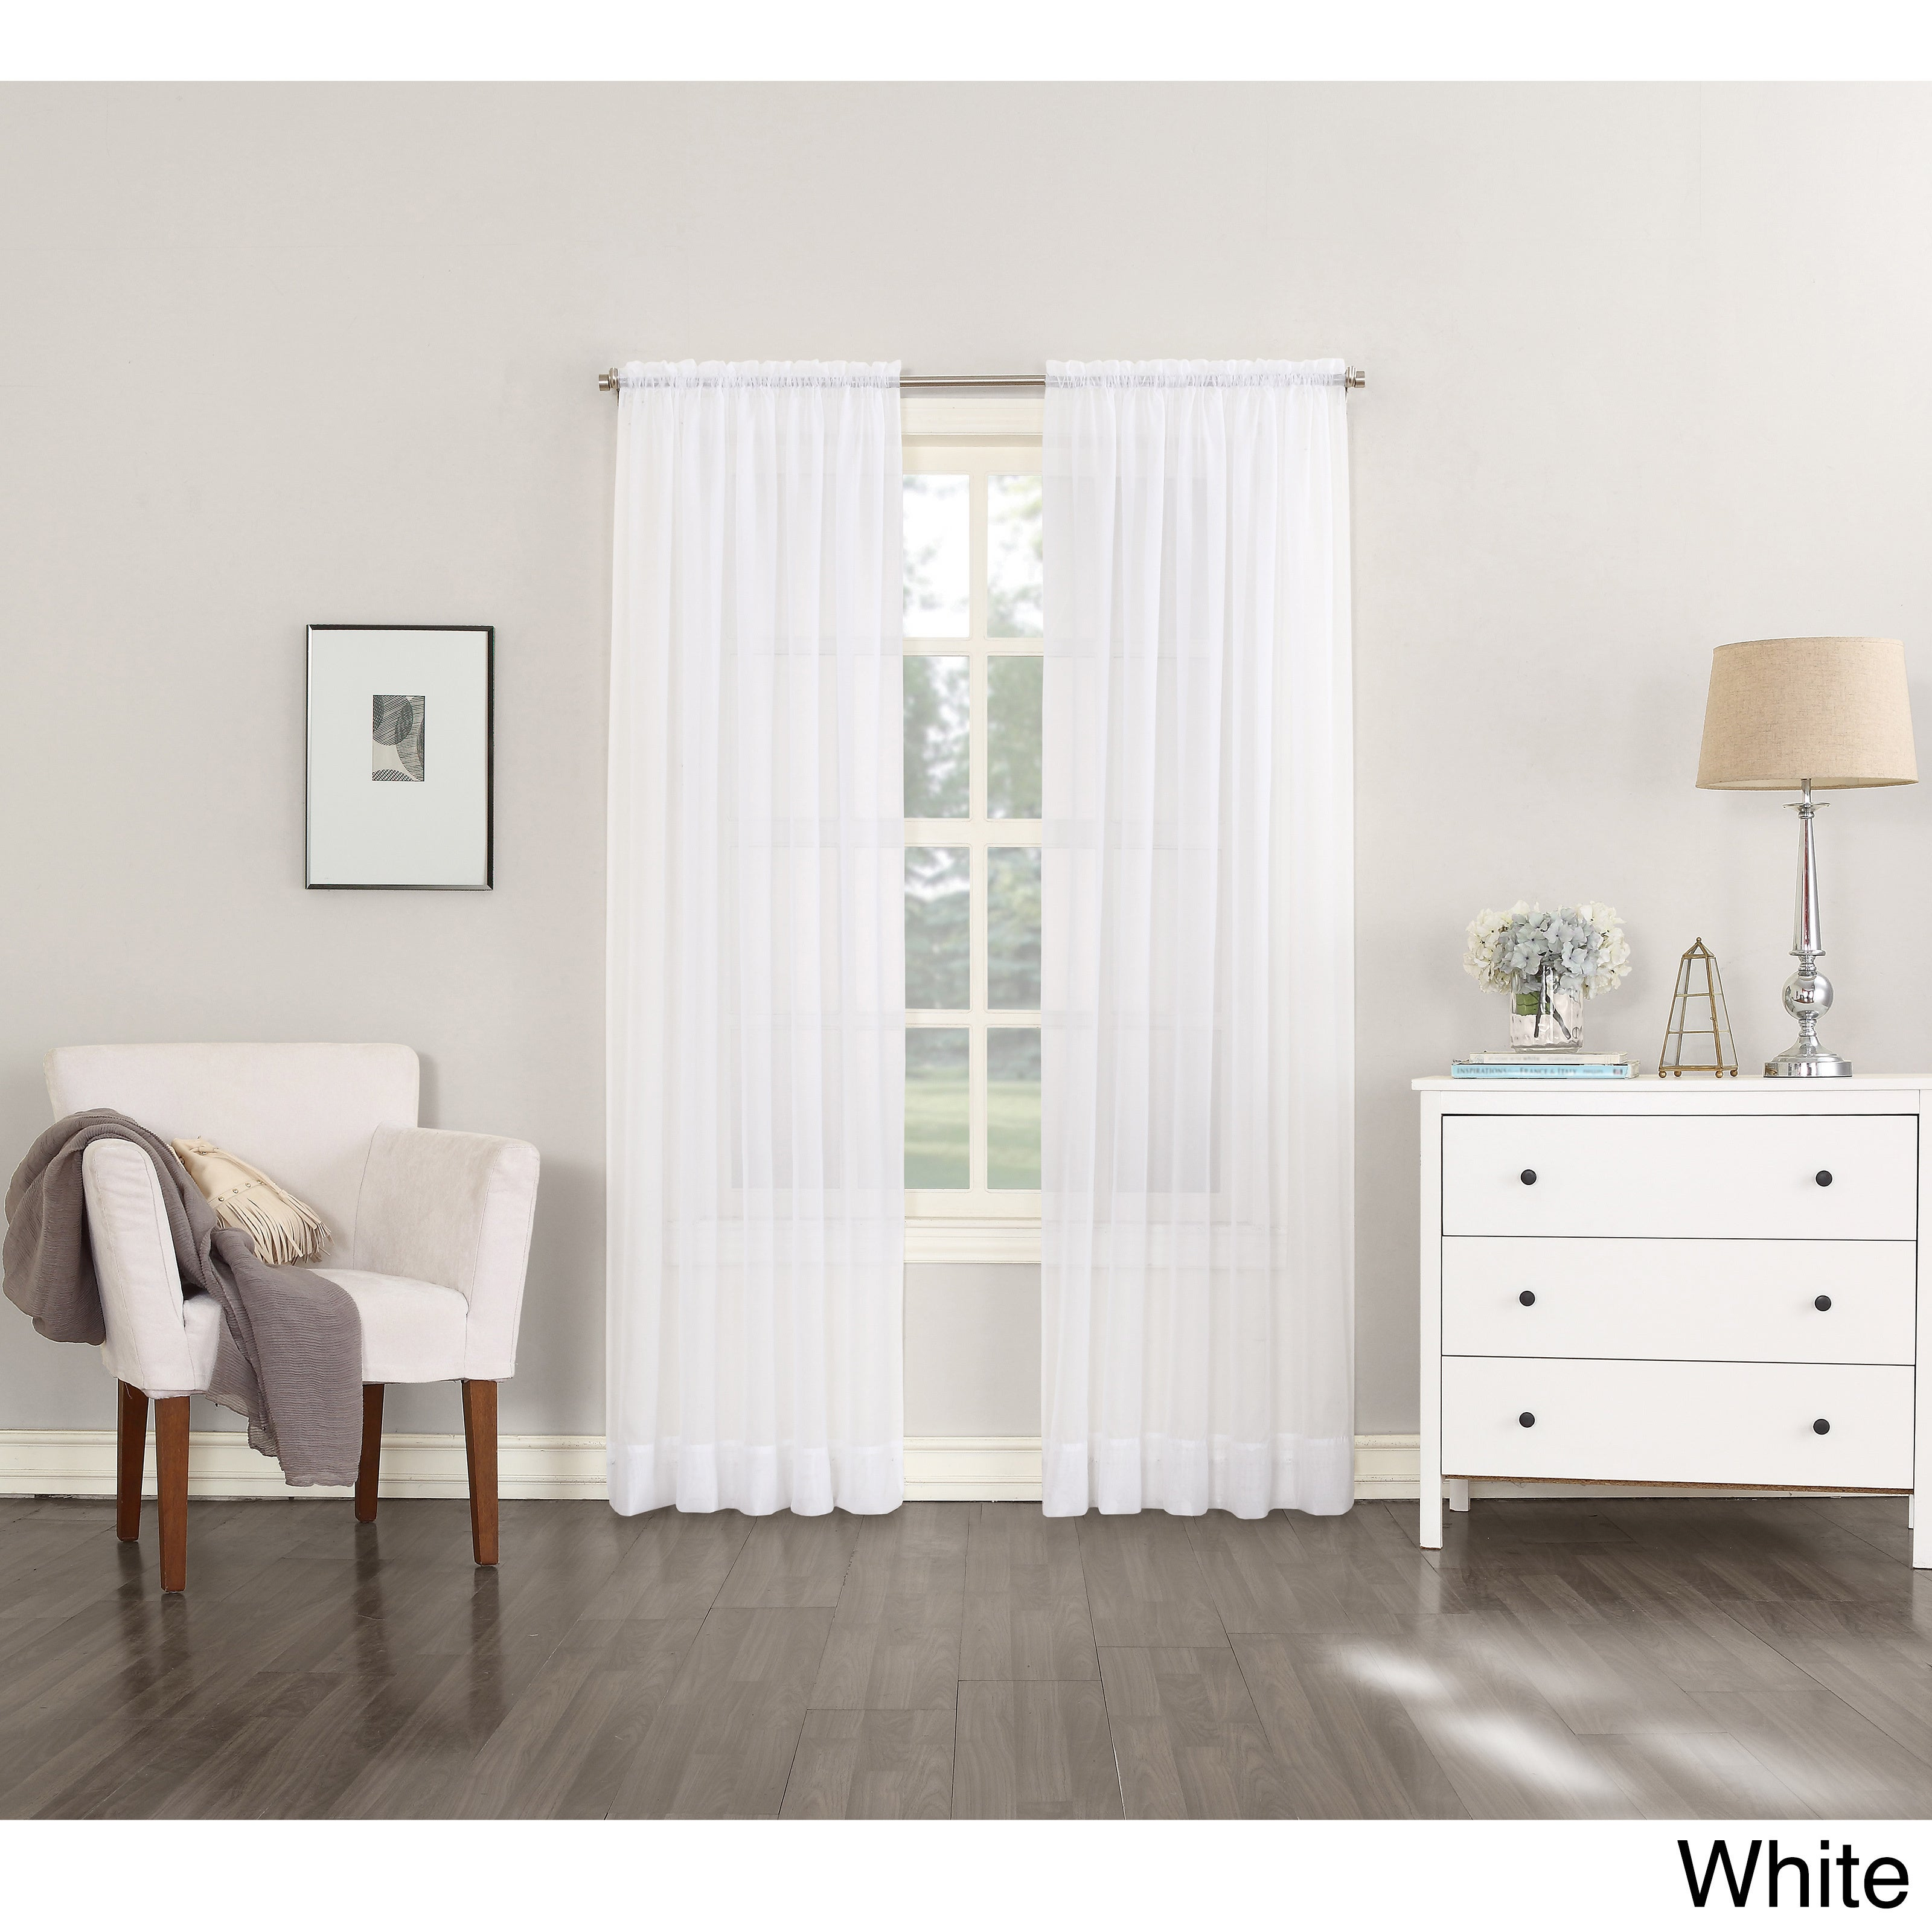 nettex of cannes curtains ash sheer with fresh inverted pleat curtain voile